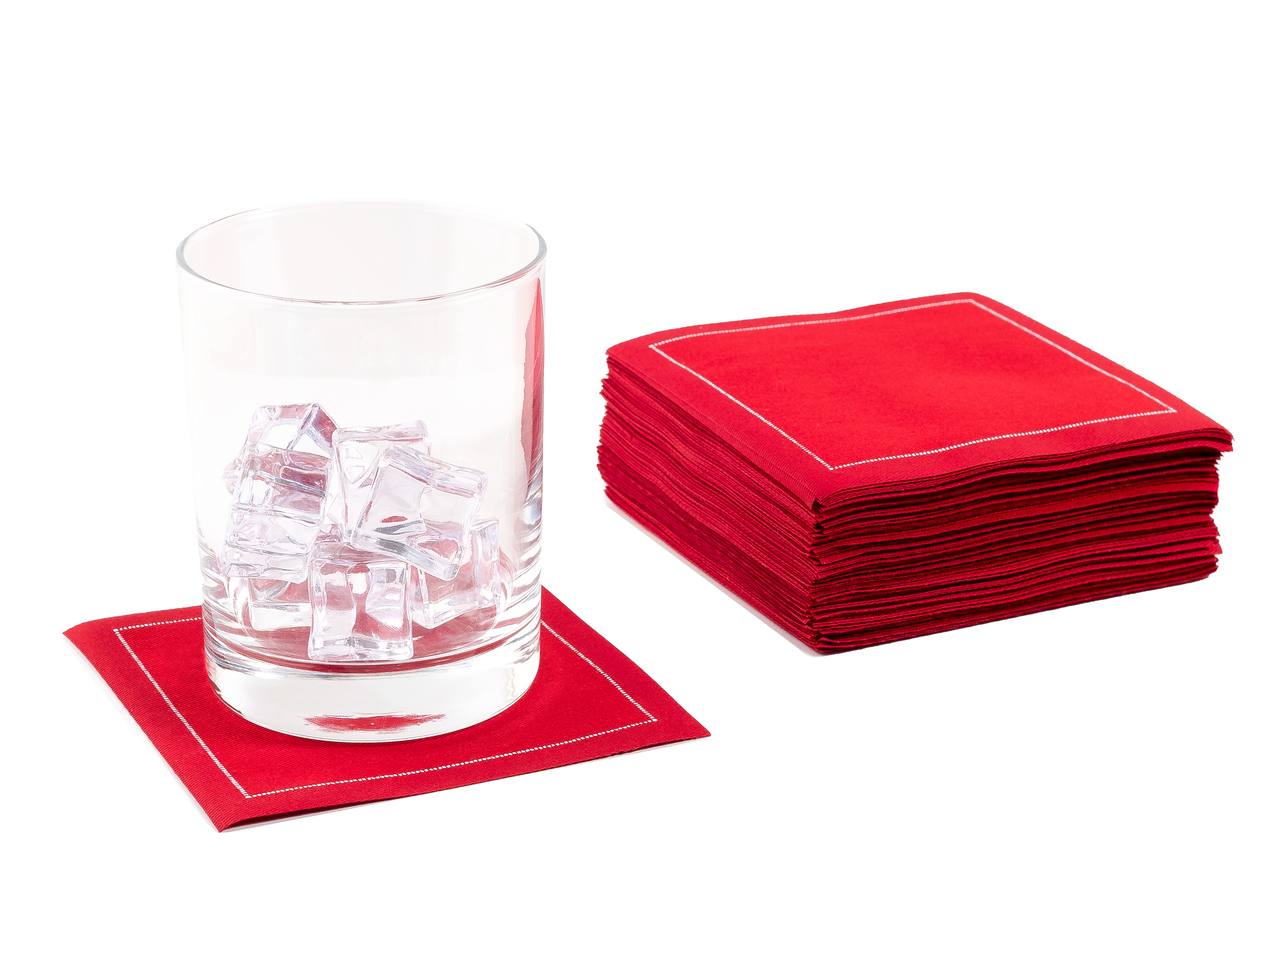 "Red Cotton Cocktail - 4.5"" x 4.5"" - 100 units"